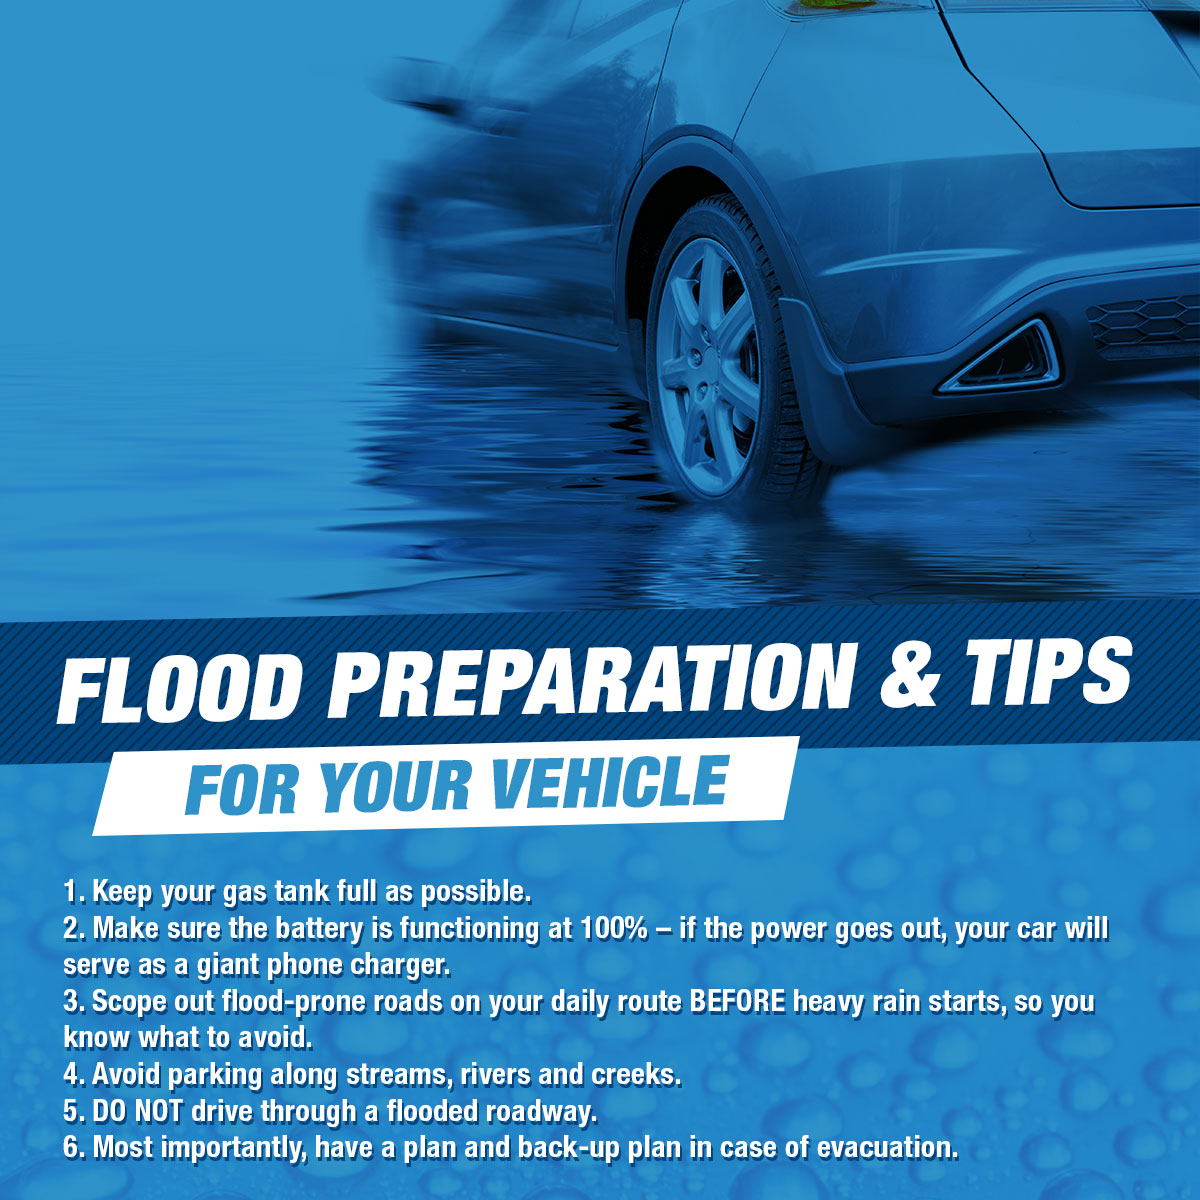 What Should I Do If My Car Gets Water Damage?